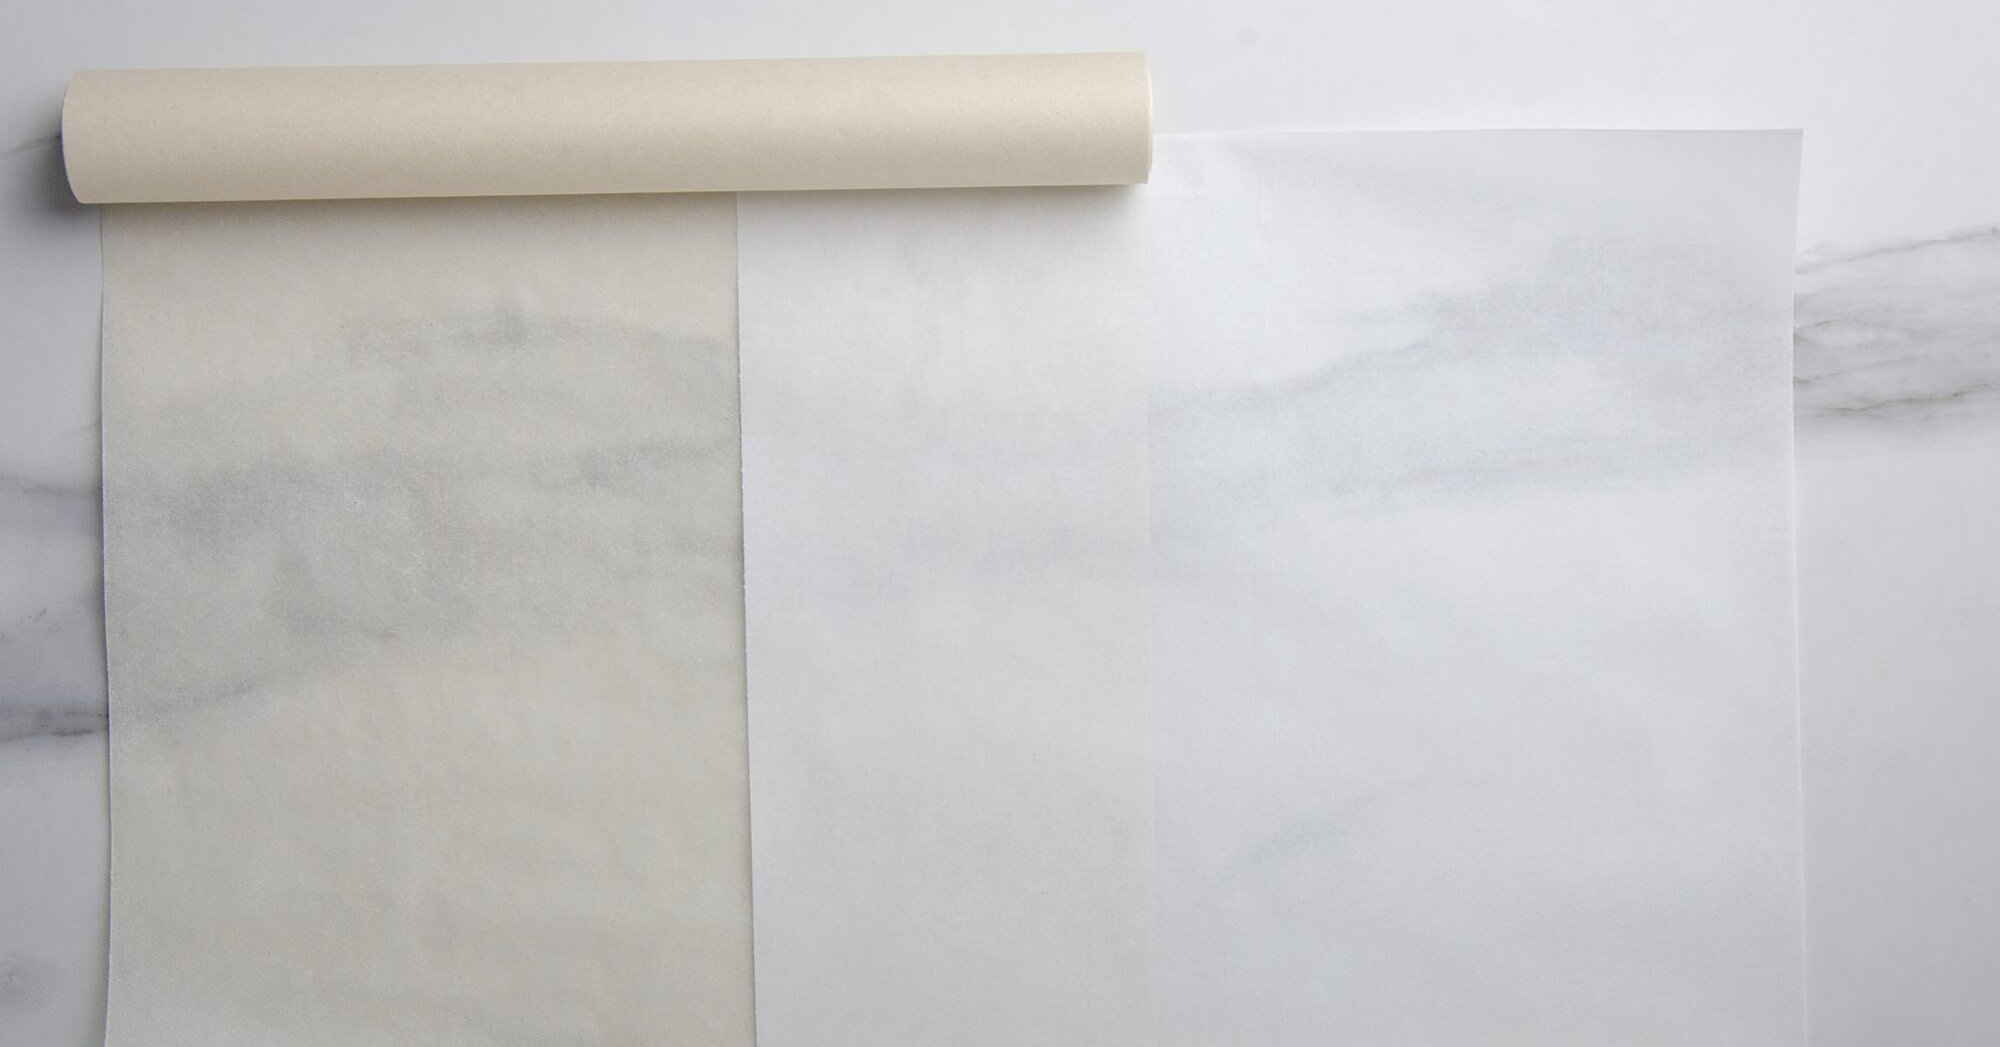 Wax Paper vs. Parchment Paper: What's the Difference?